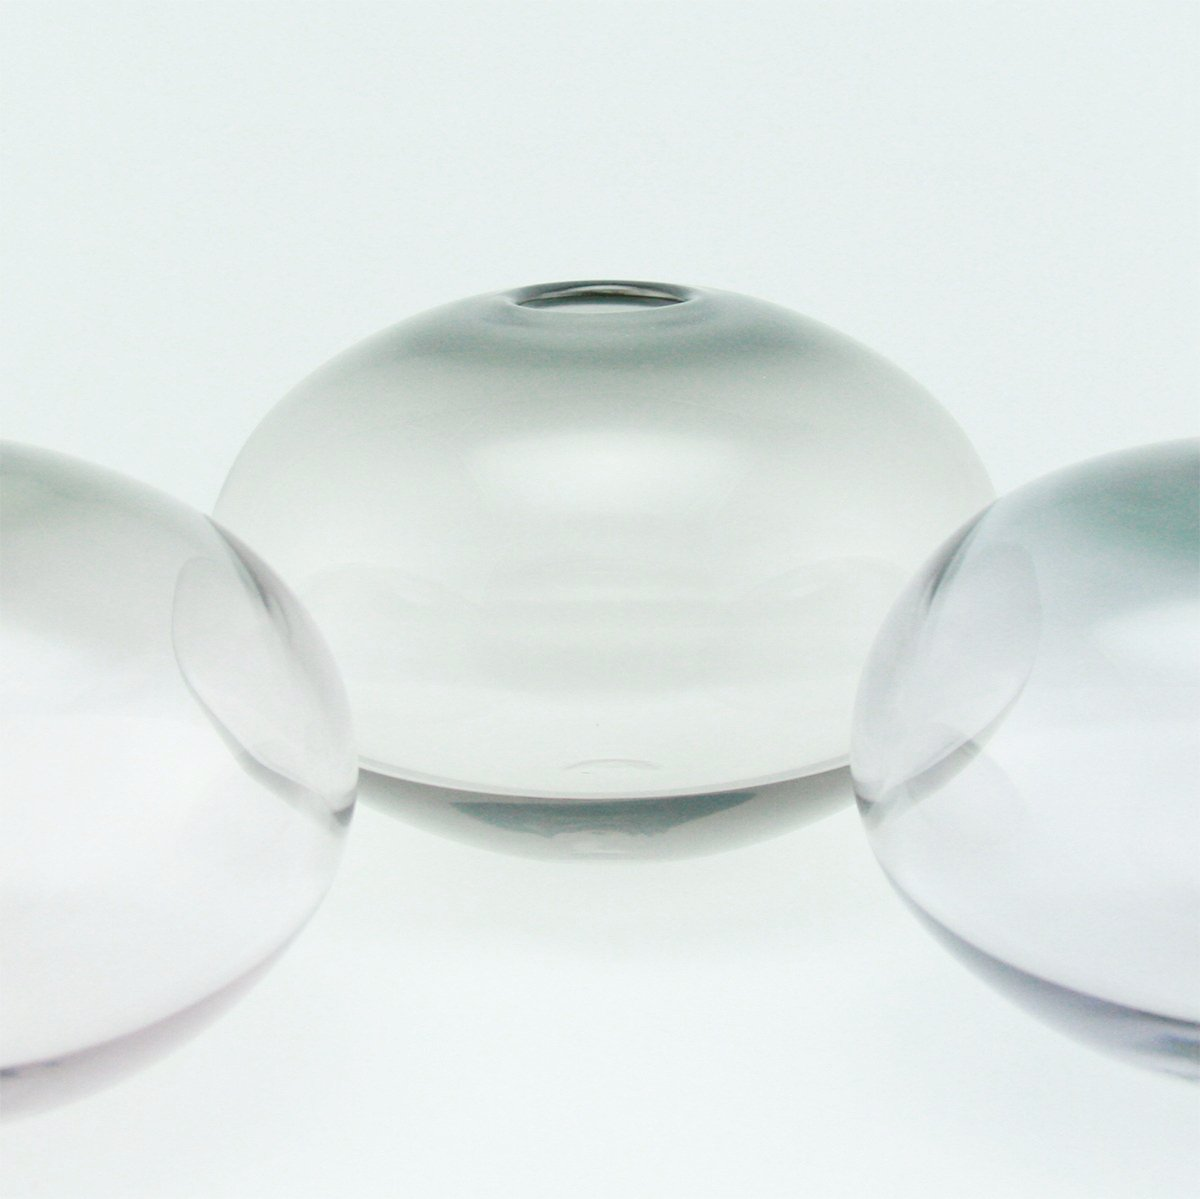 Muted Orb Vessels